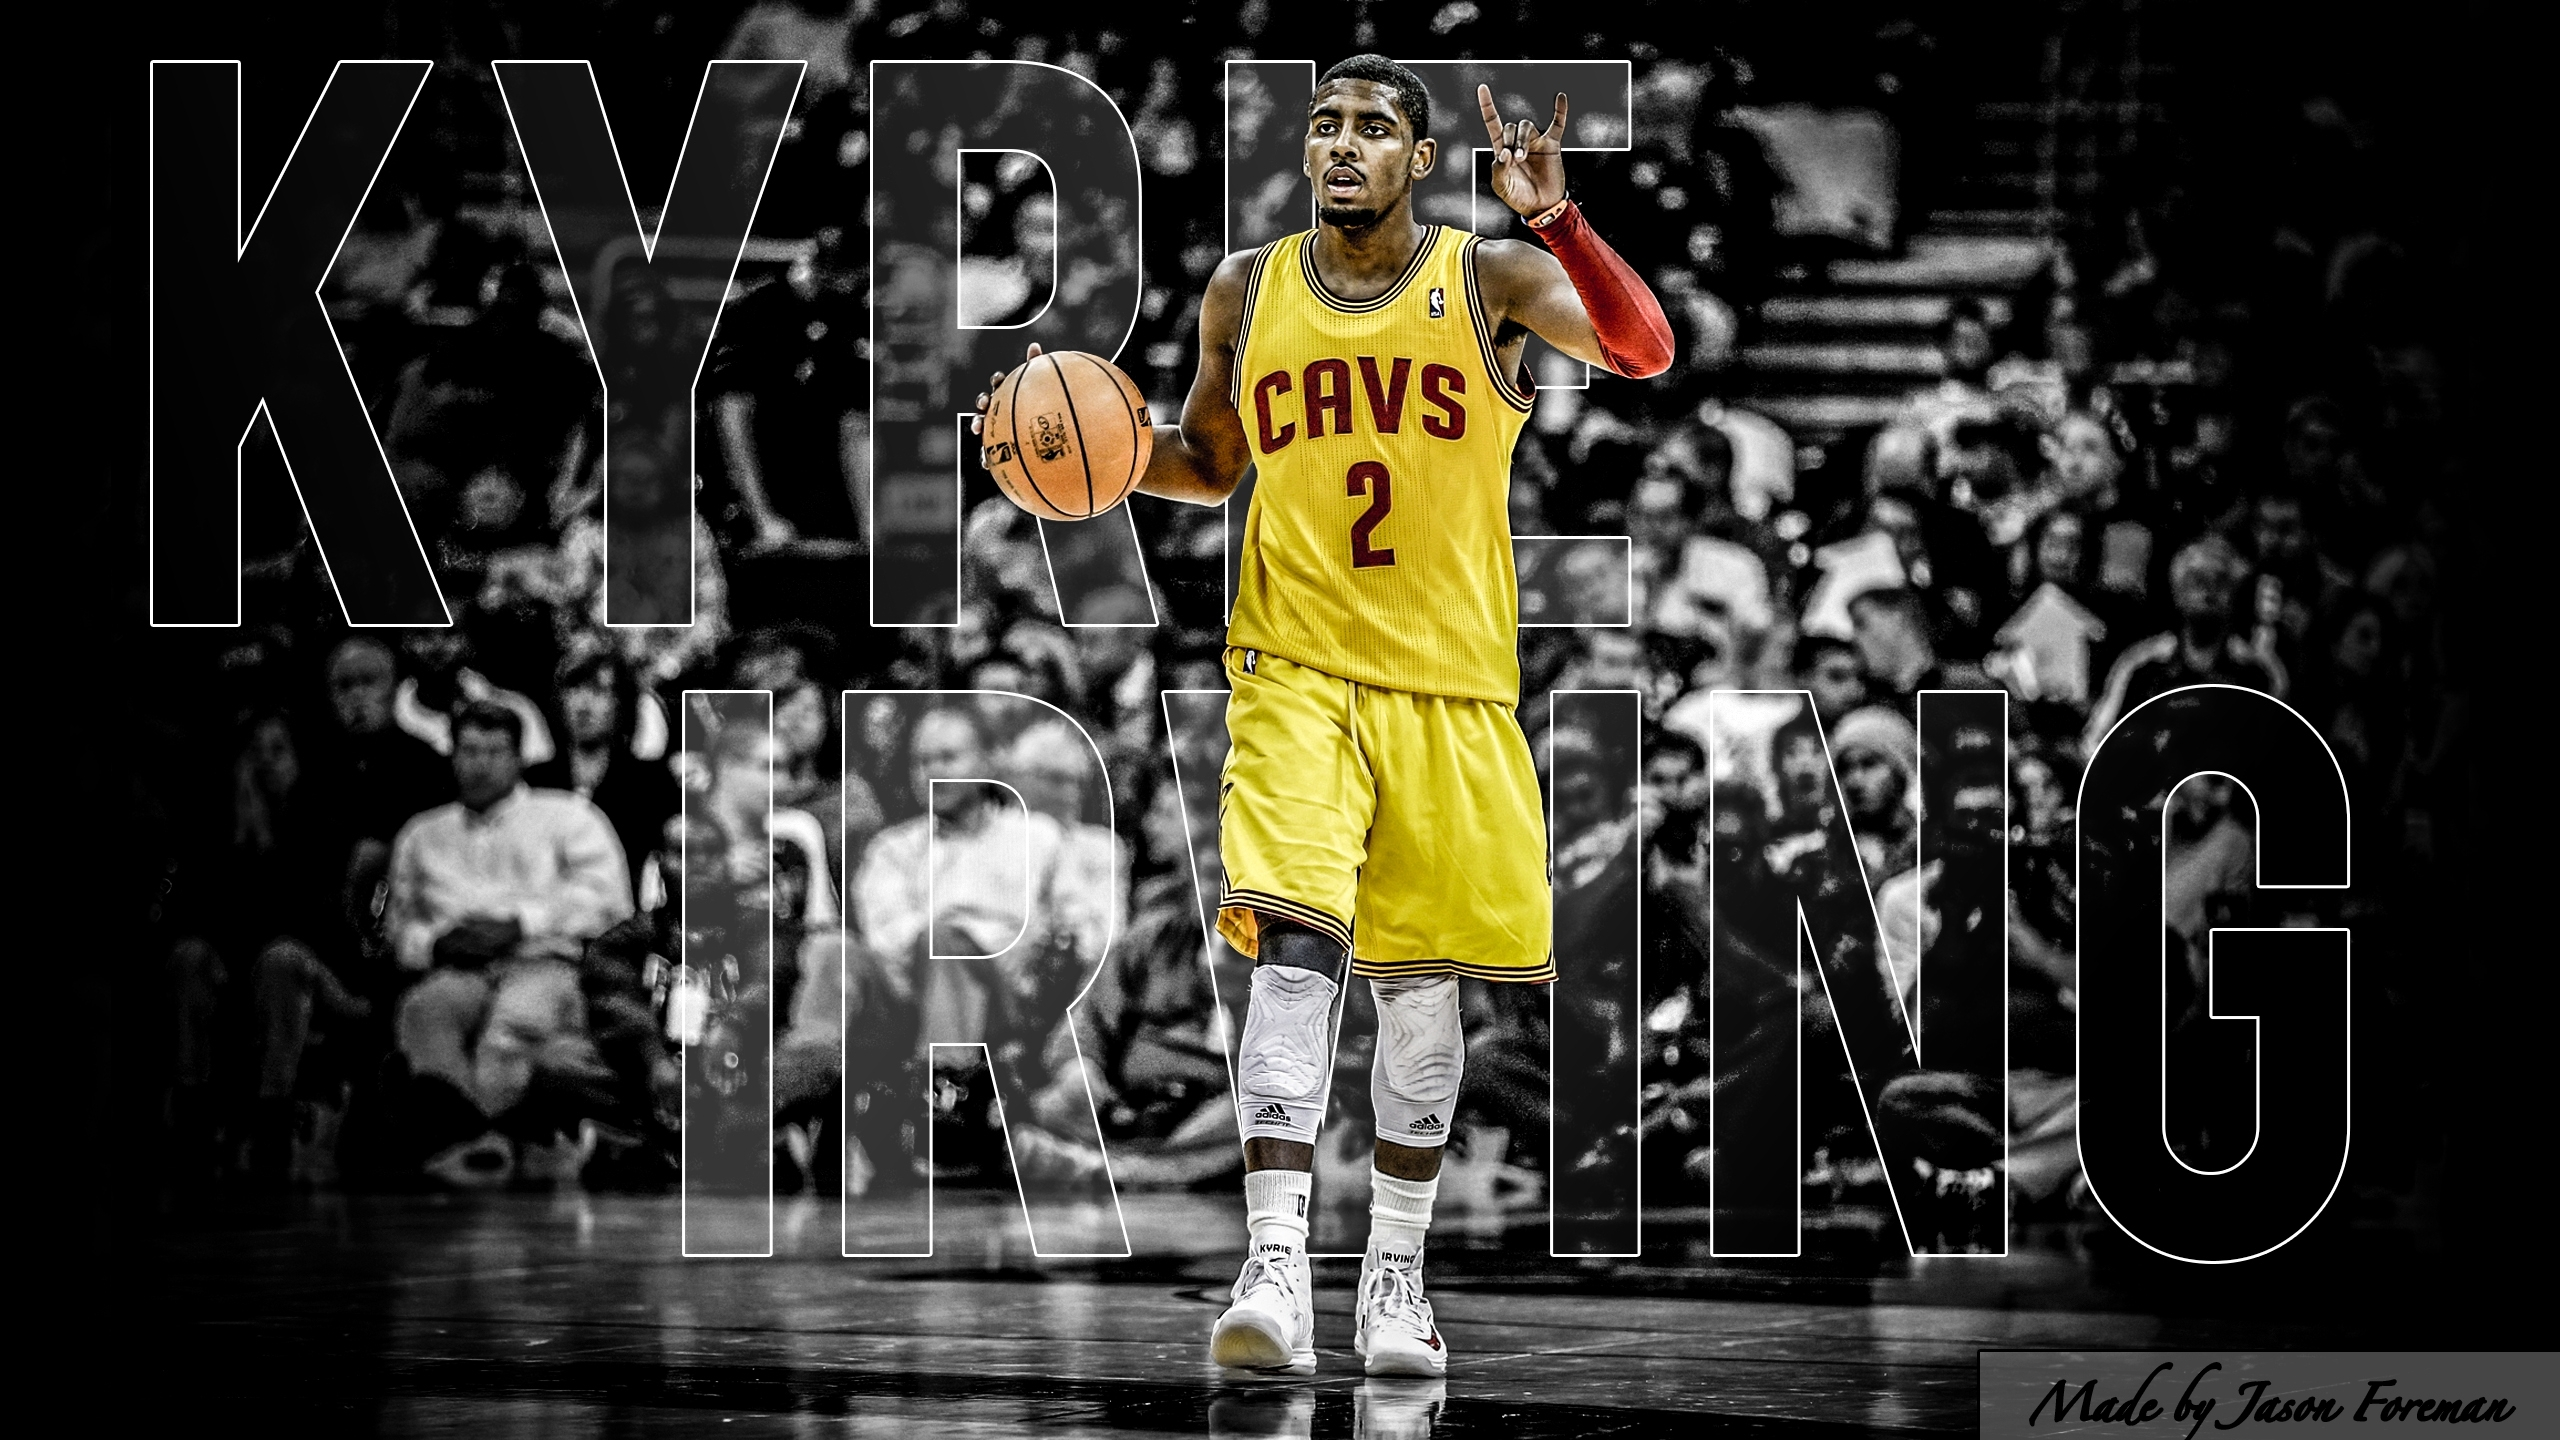 kyrie irving wallpaper | wallpaper.wiki